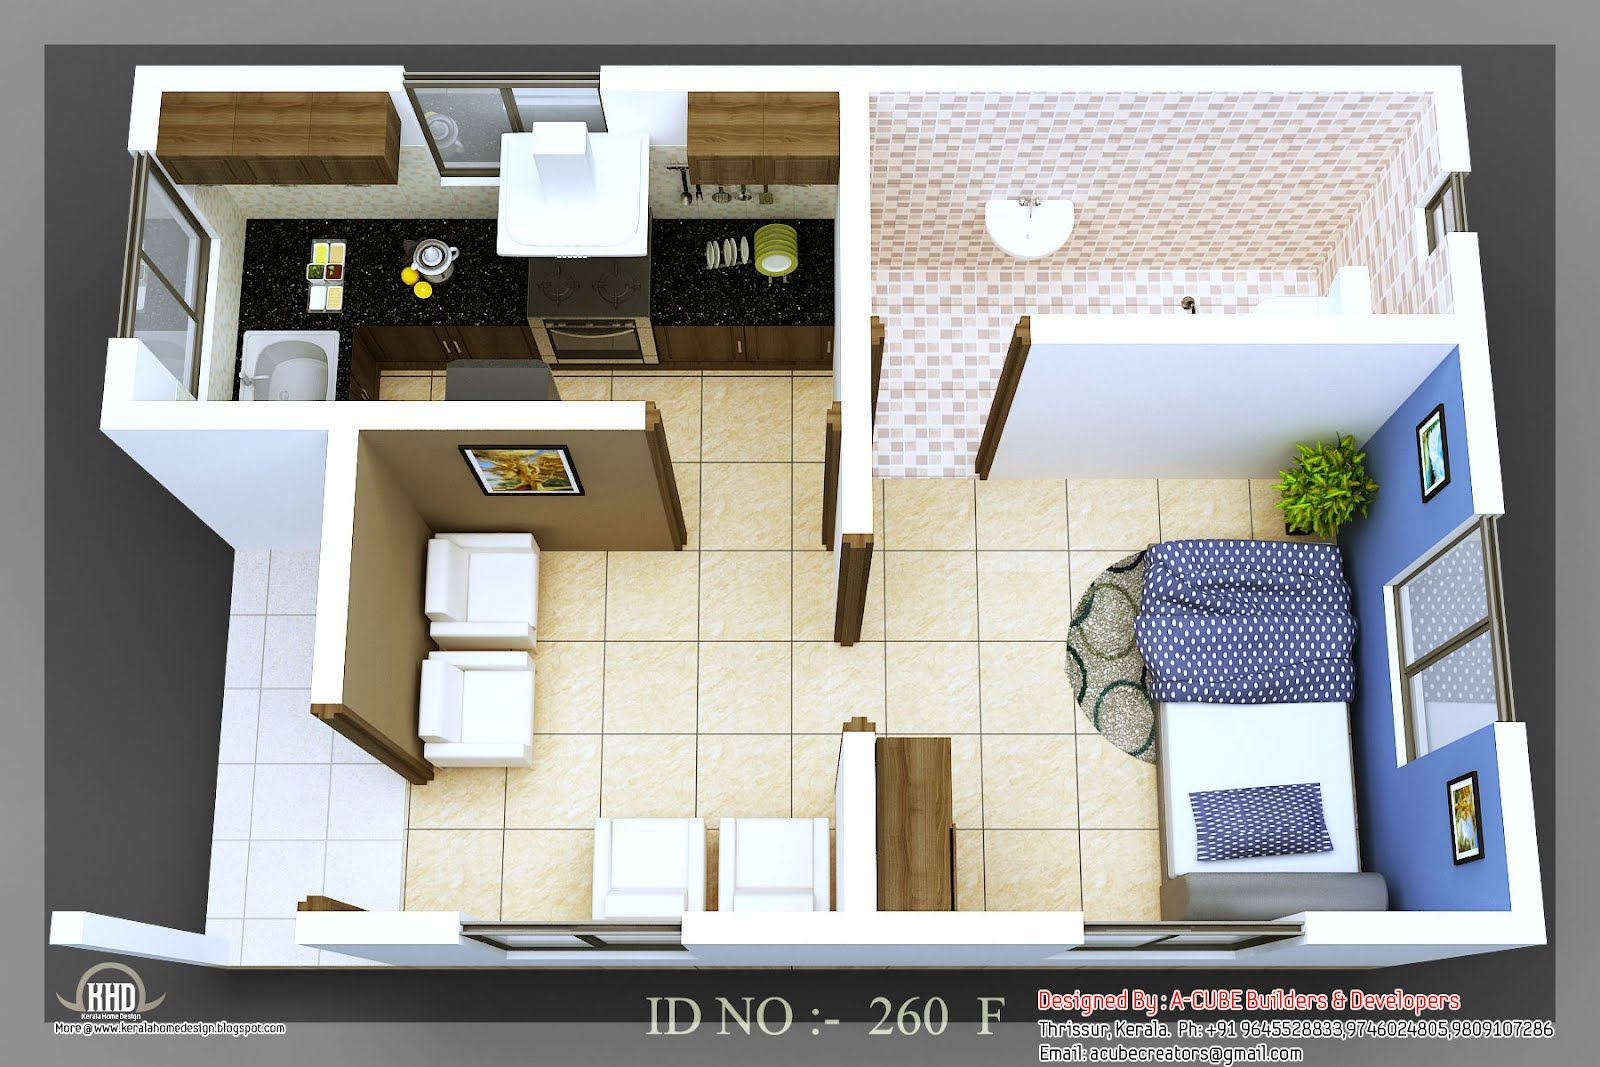 3d Isometric Views Of Small House Plans In 2020 Tiny